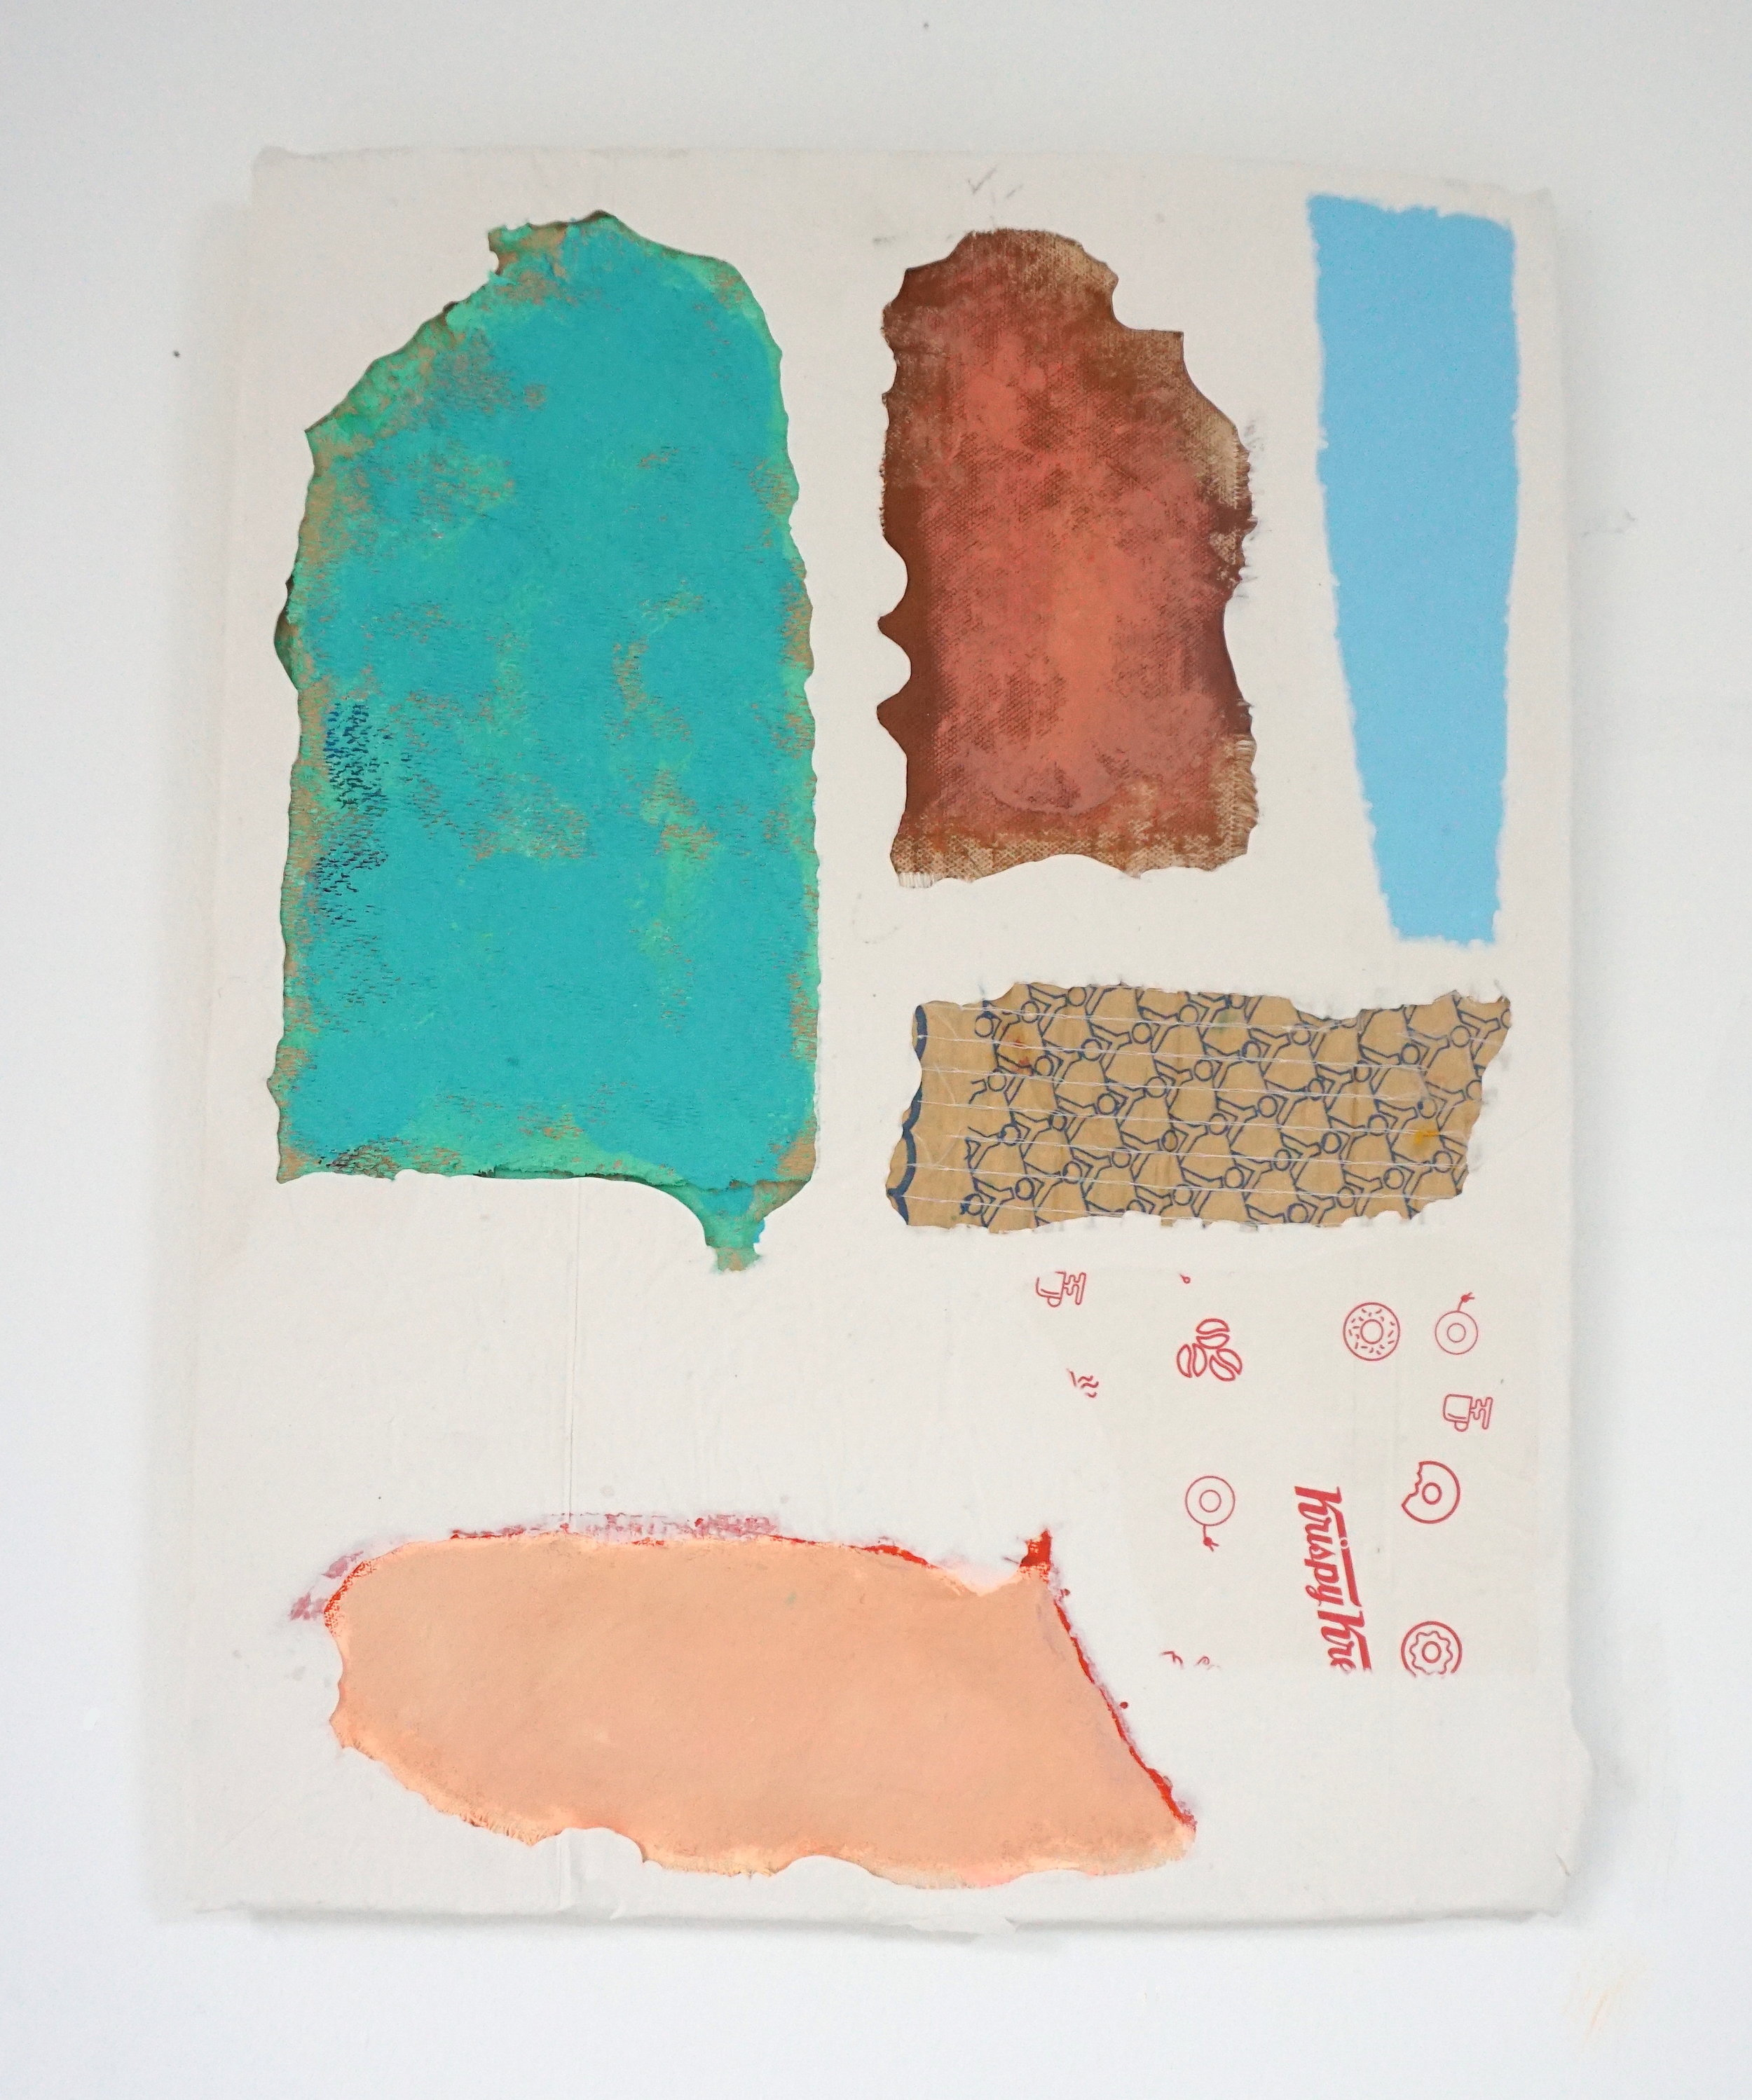 Untitled Fragment (canvas, found painted wood, carpet underlay, pvc, Krispy Kreme wrapper) | Composite and Mixed Media | 42 x 32 cm